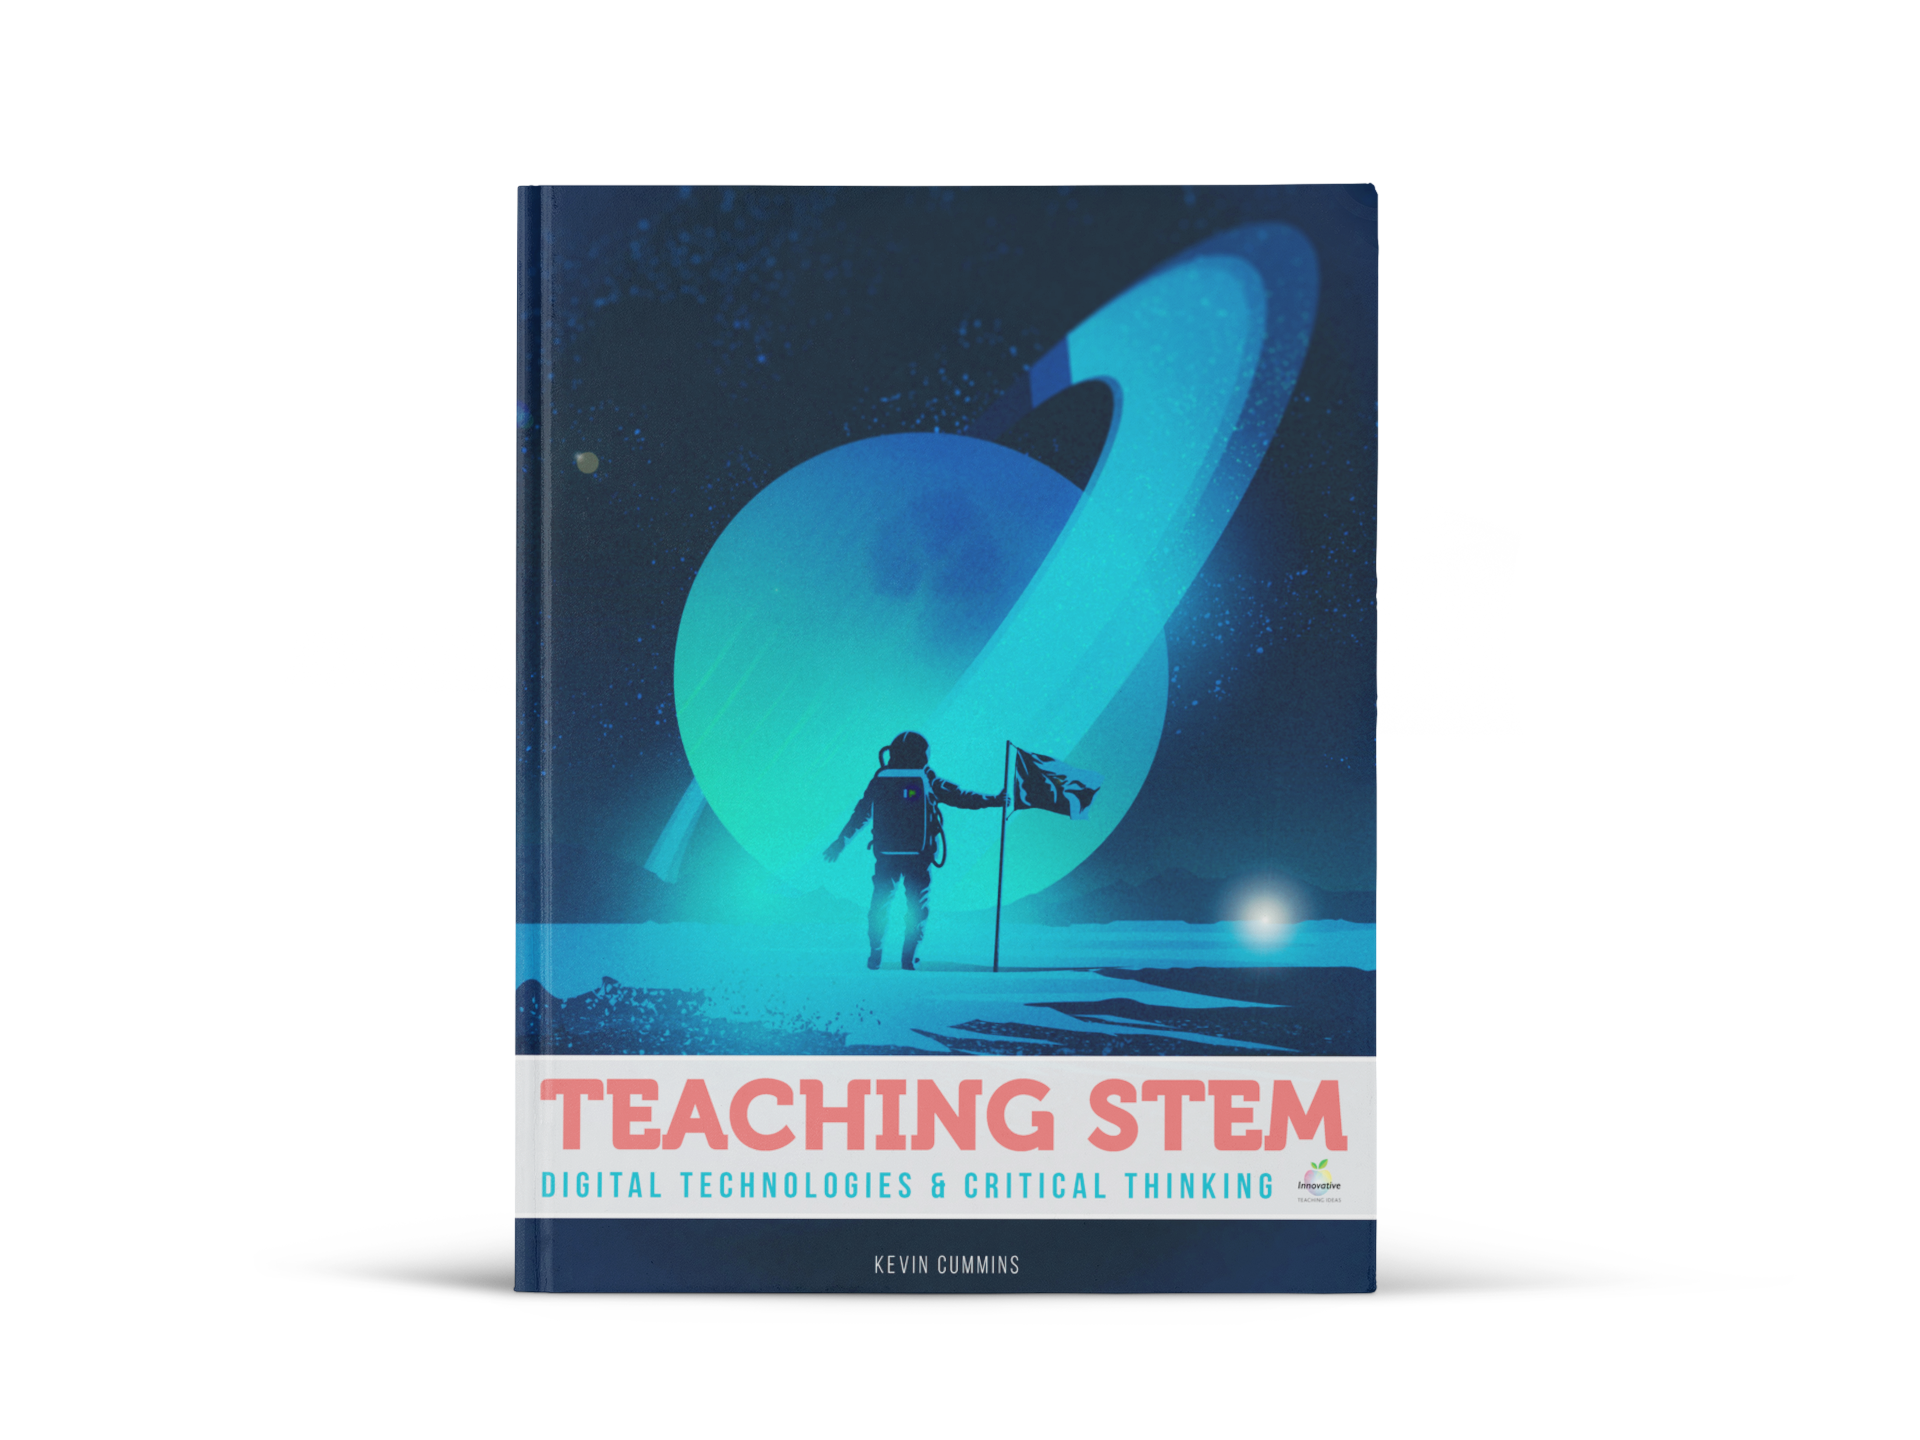 Available now: Teaching STEM & Digital Technologies